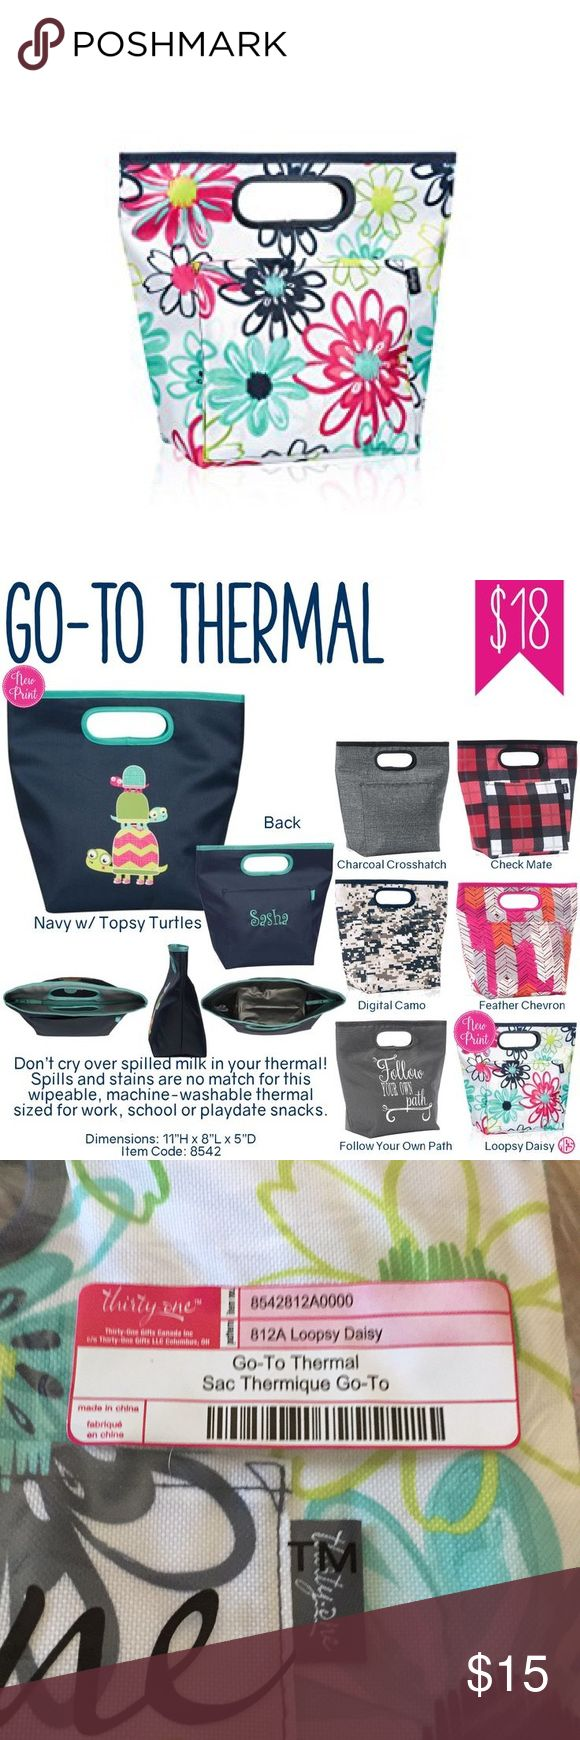 "Thirty-One Go To Thermal, Loopsy Daisy, New We don't call it the Go-To Thermal for nothing! When you think of the universal lunch bag, this is it. With clean lines a simple handle and a variety of prints, this tote is perfect for every member of the family. Features a zip closure and an exterior pocket. Machine washable and wipeable lining. Key features: Polyester Zipper closure Exterior flat pocket Keeps contents cool or warm for up to 1.25 hours Holds up to 10 lbs 11""H x 12.5""L at top…"